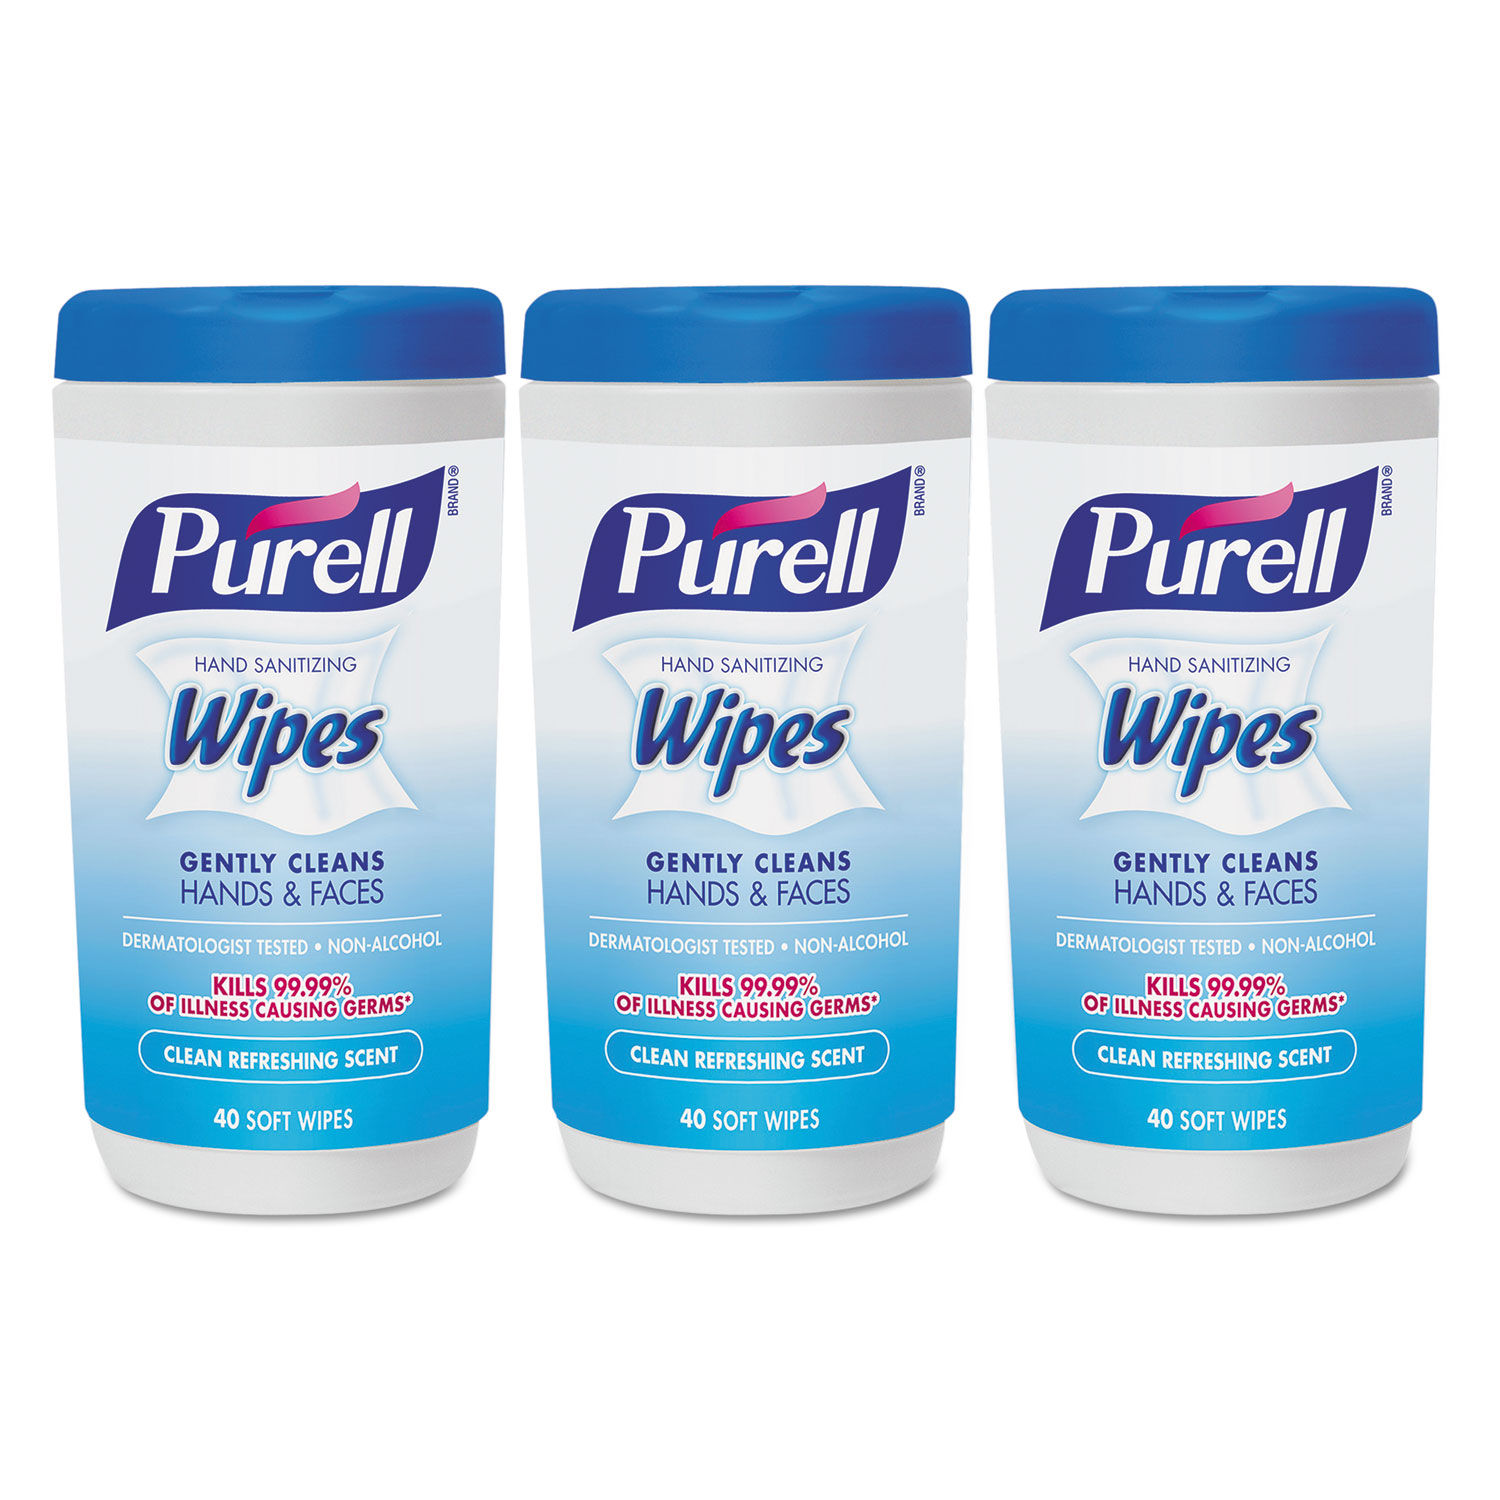 purell hand sanitizing wipes clean refreshing scent 40 wipes